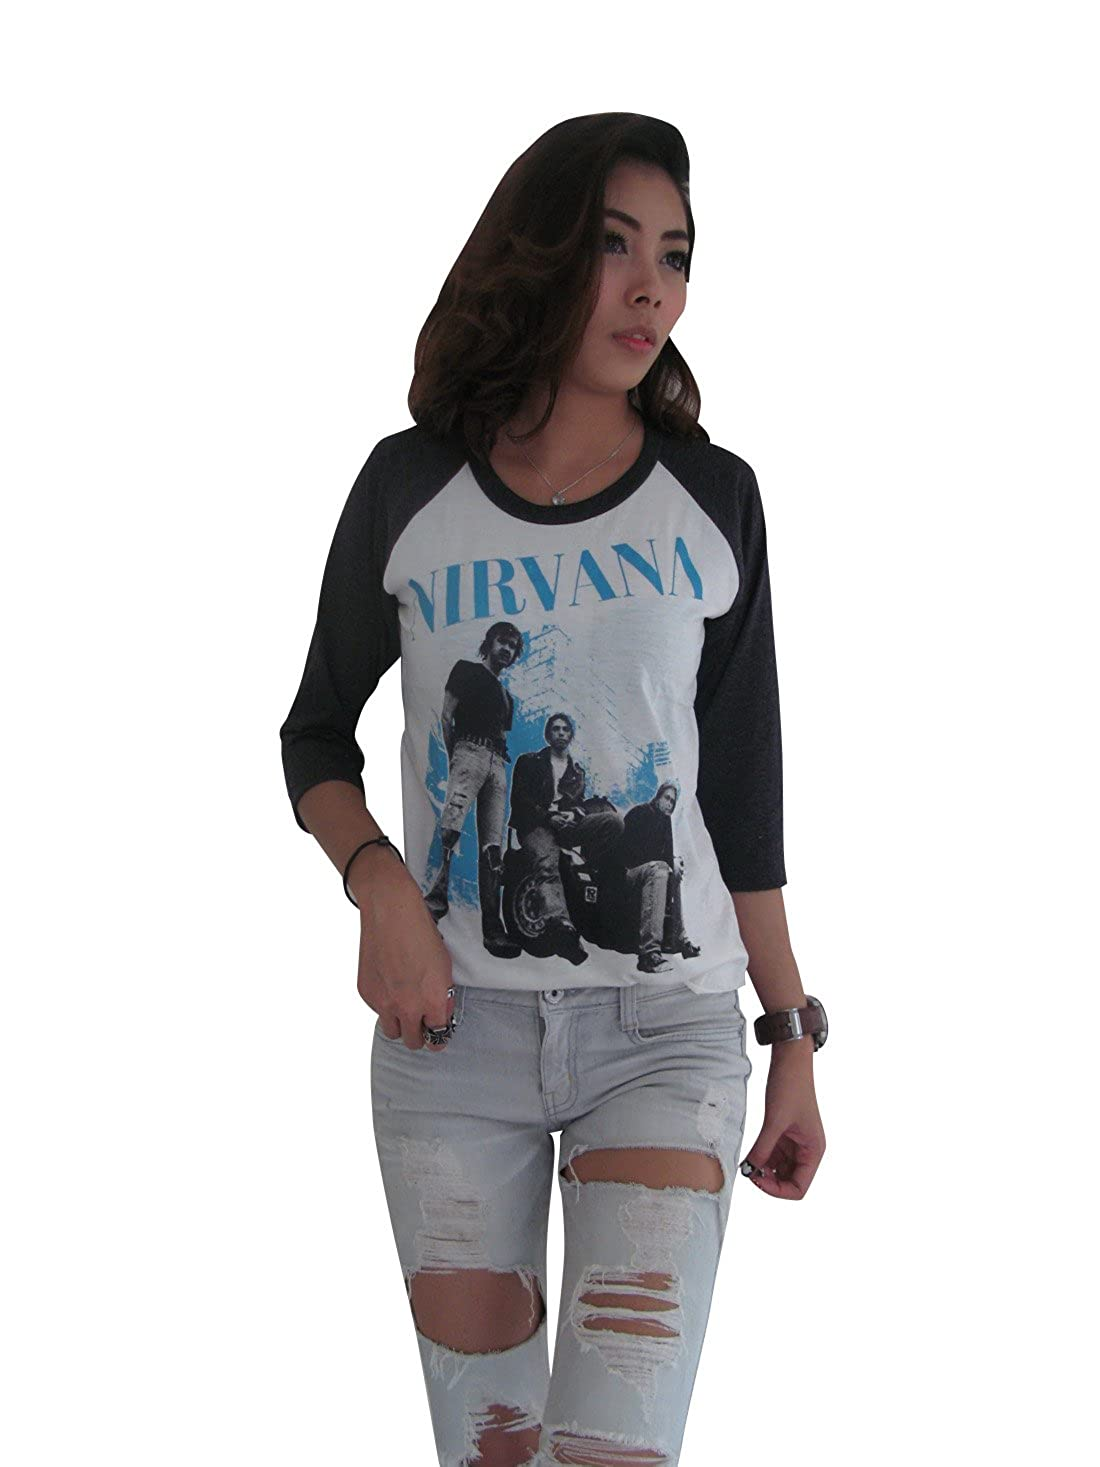 BUNNY BRAND Women's Rock Band Nirvana Kurt Cobain Group Photo Music T-Shirt